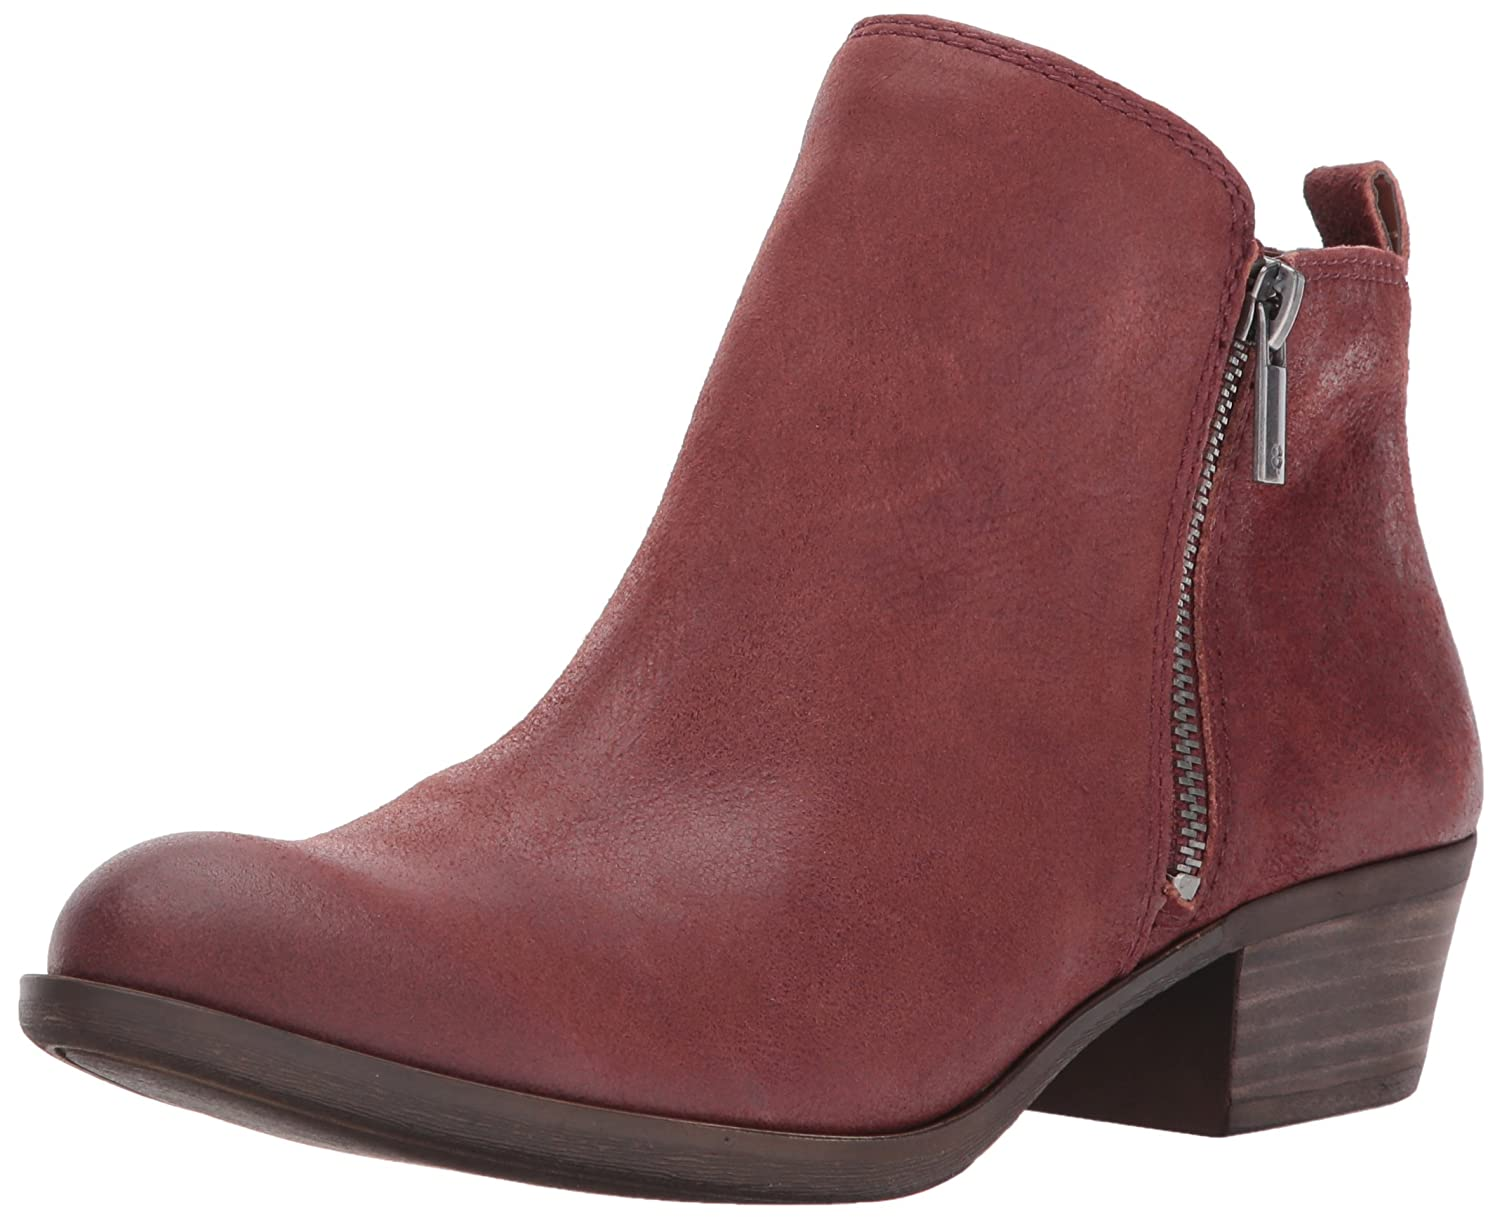 Lucky Brand Women's Basel Boot B06XRJX2HB 6 B(M) US|Sable